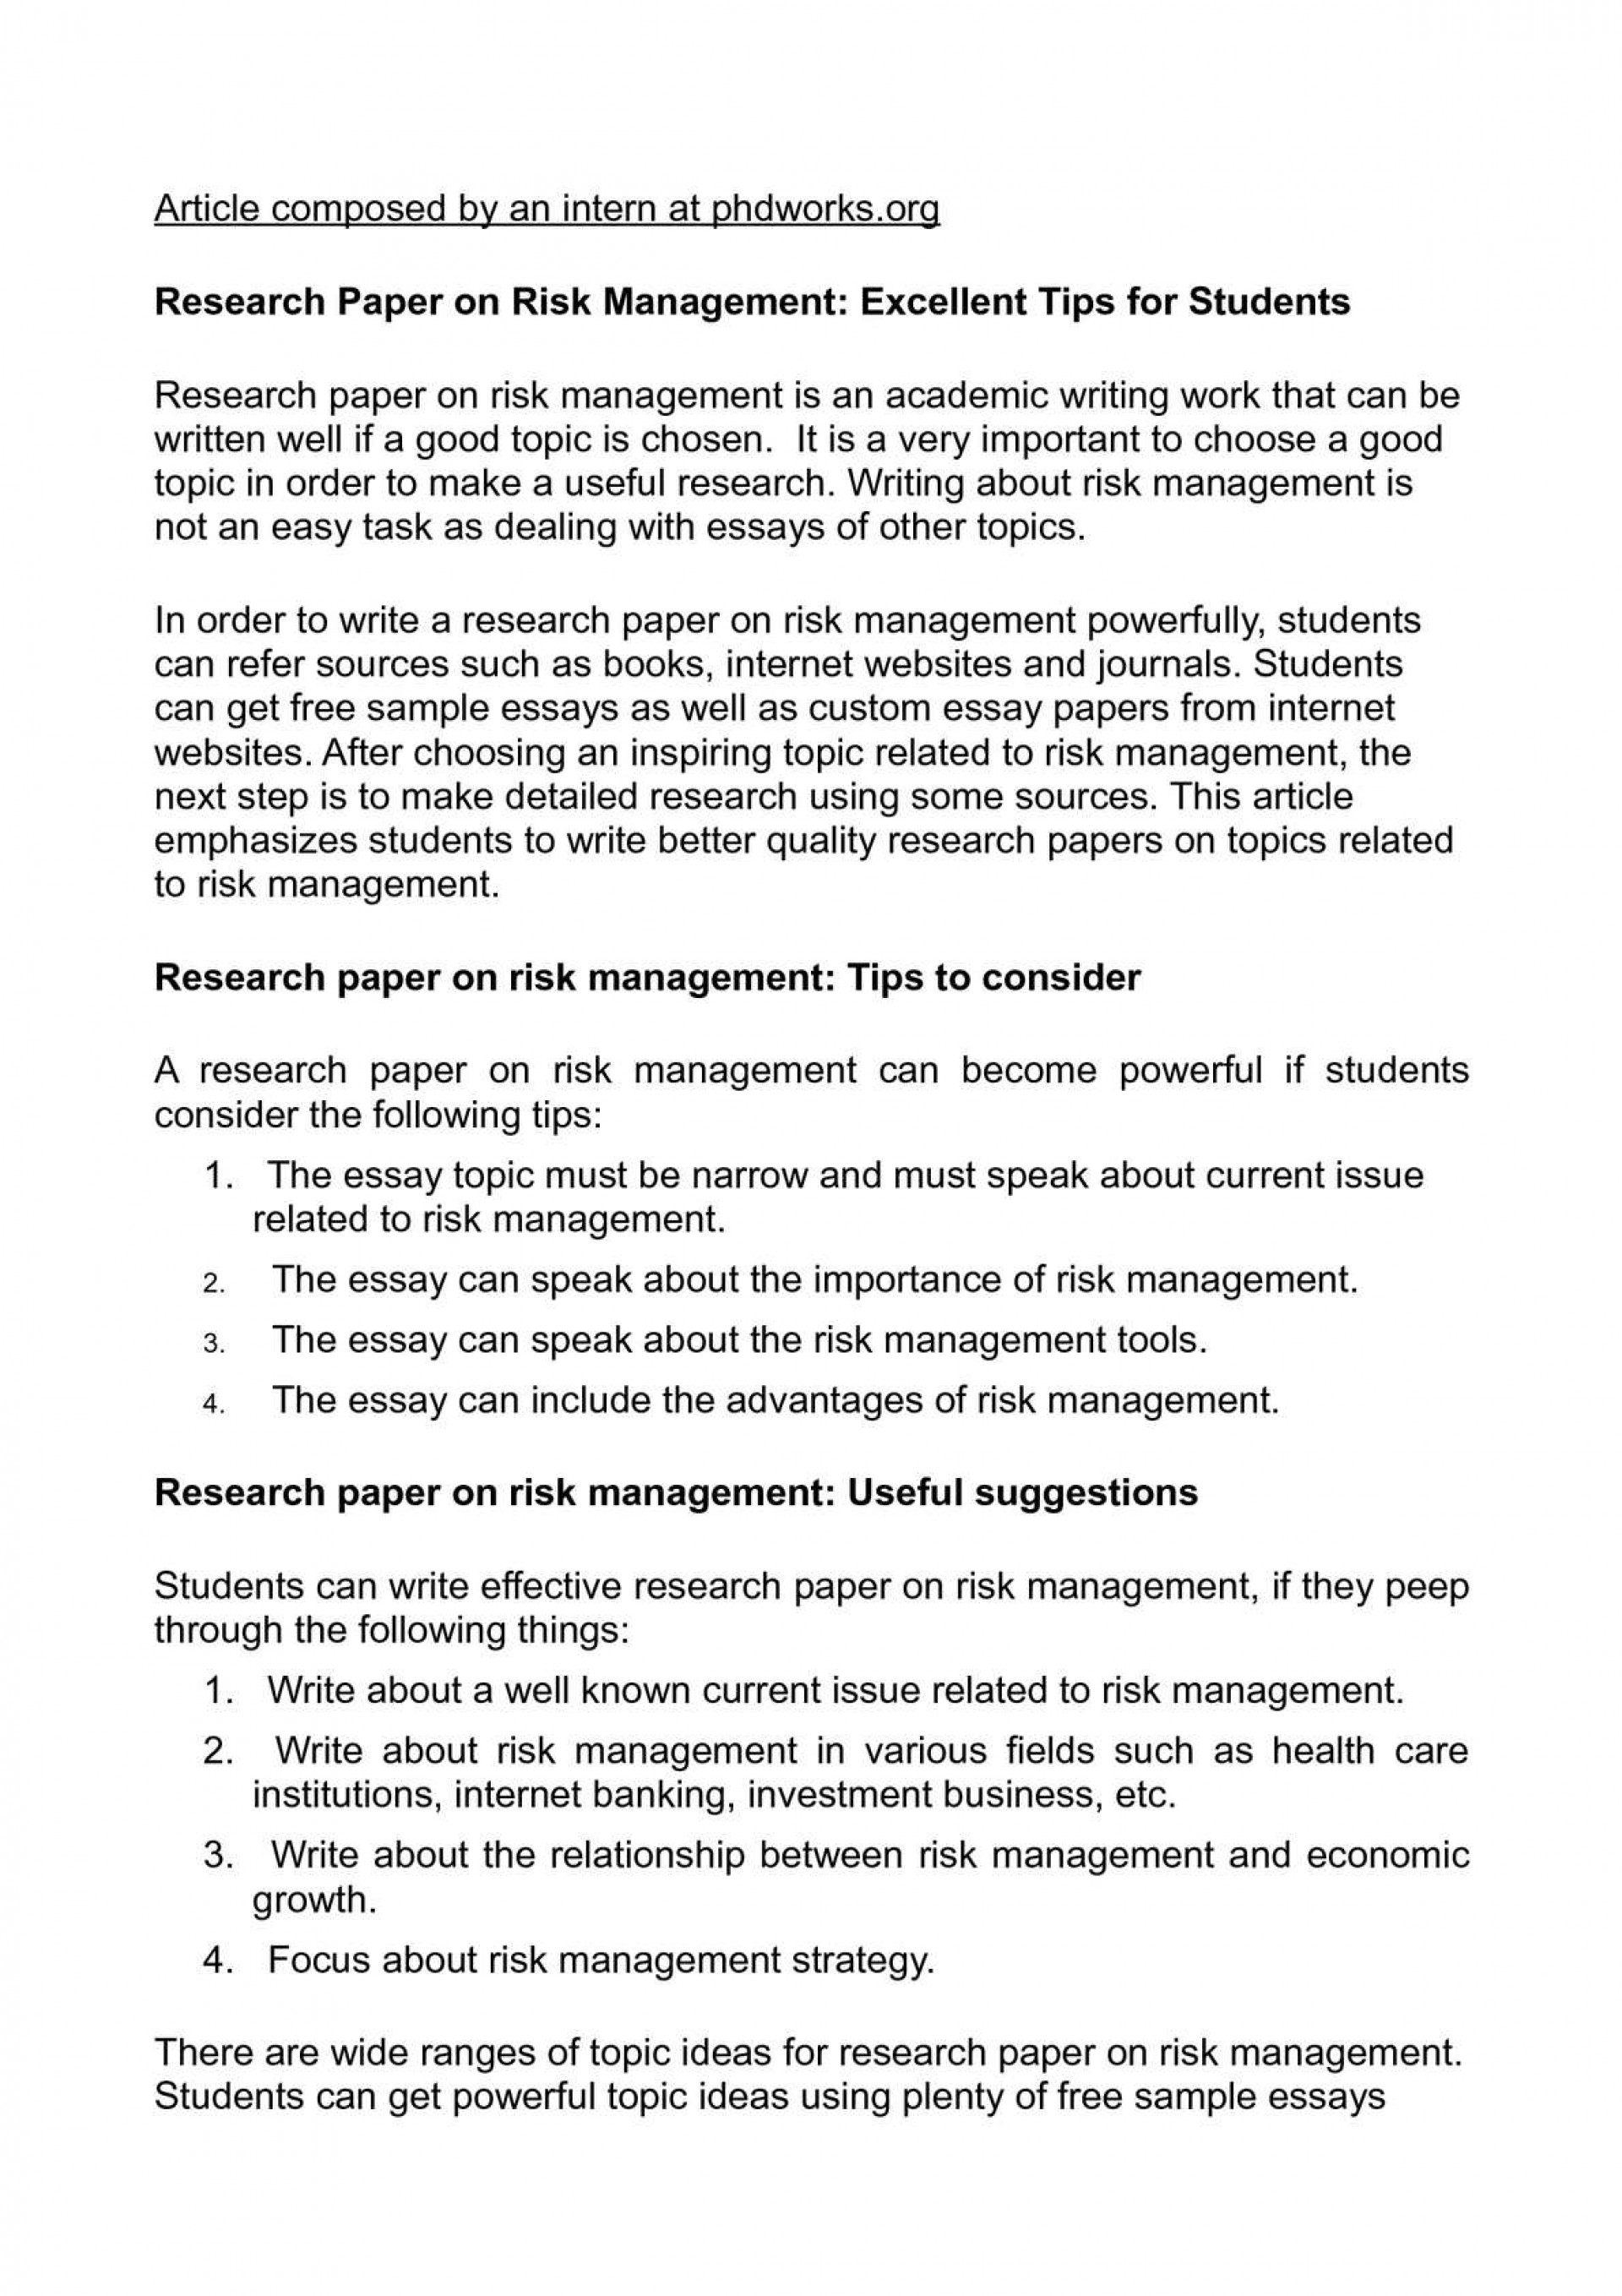 Learn English Essay Writing  How To Write An Essay For High School also What Is A Thesis Statement In An Essay Examples  Good Research Proposal Ideas New Business Management  Illustration Essay Example Papers